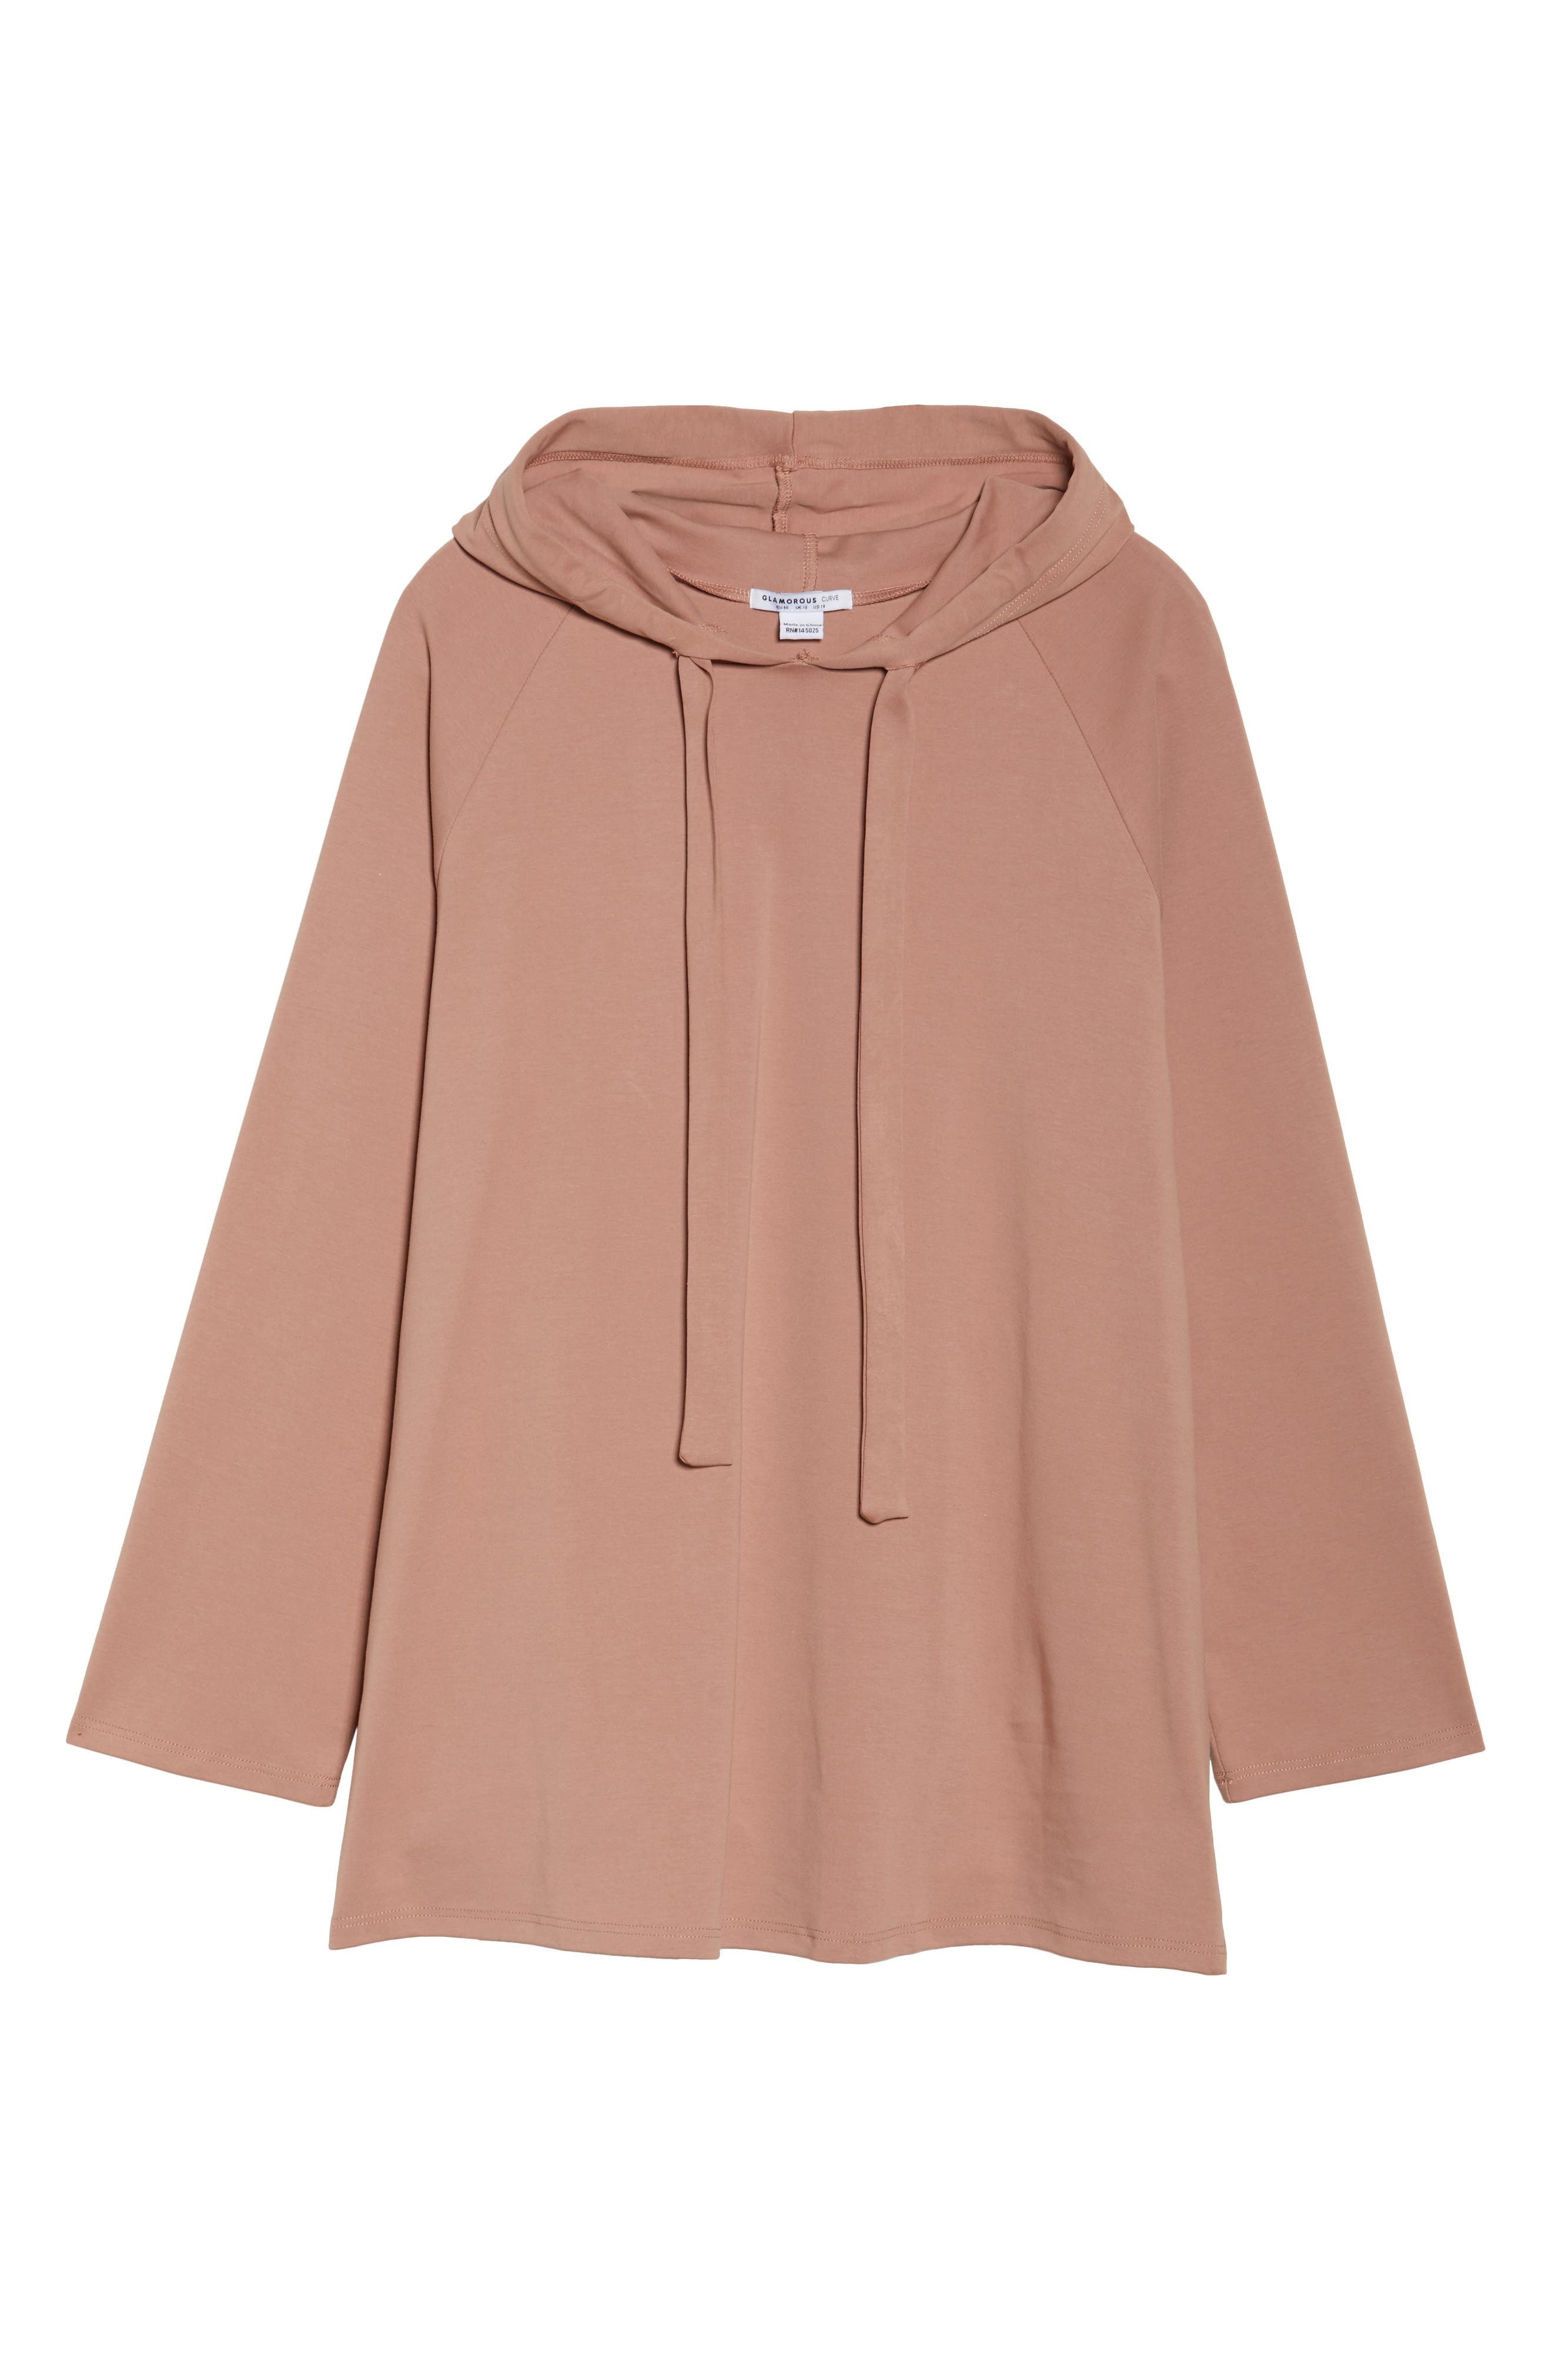 Hoodie Tunic,                             Alternate thumbnail 6, color,                             660